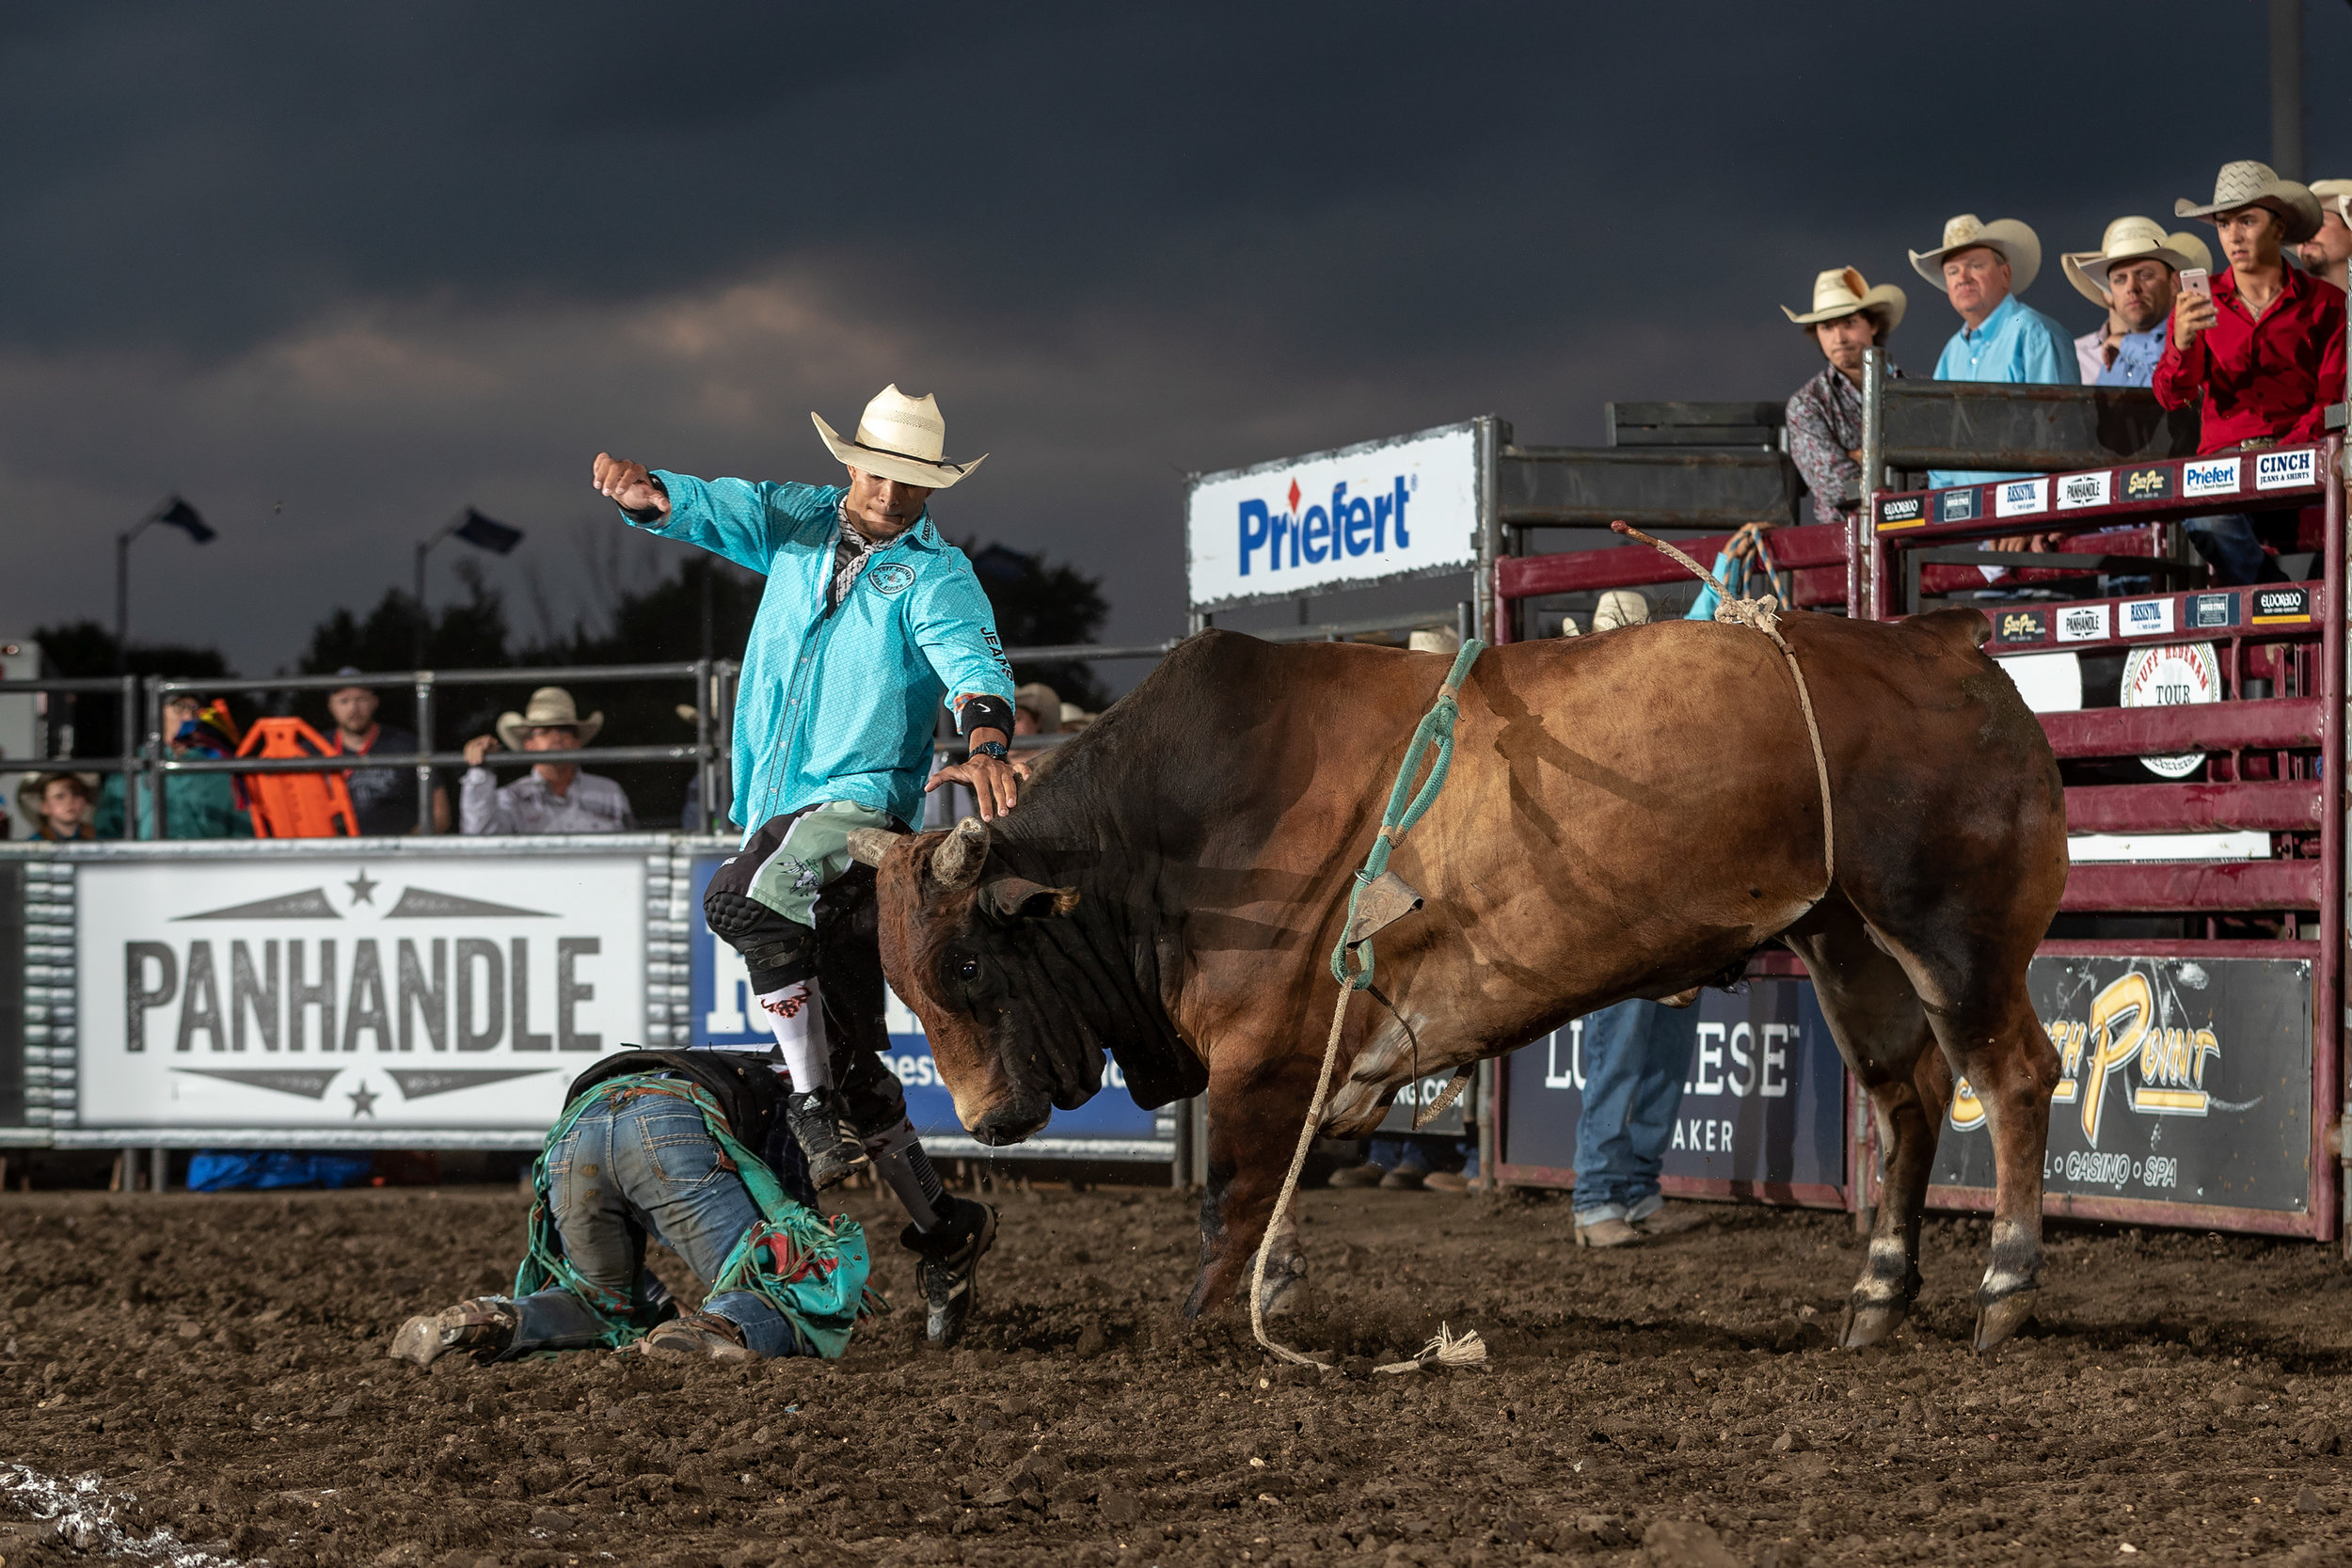 Tuff Hedeman bullfighter and former Bullfighters Only Champion Byrce Redo